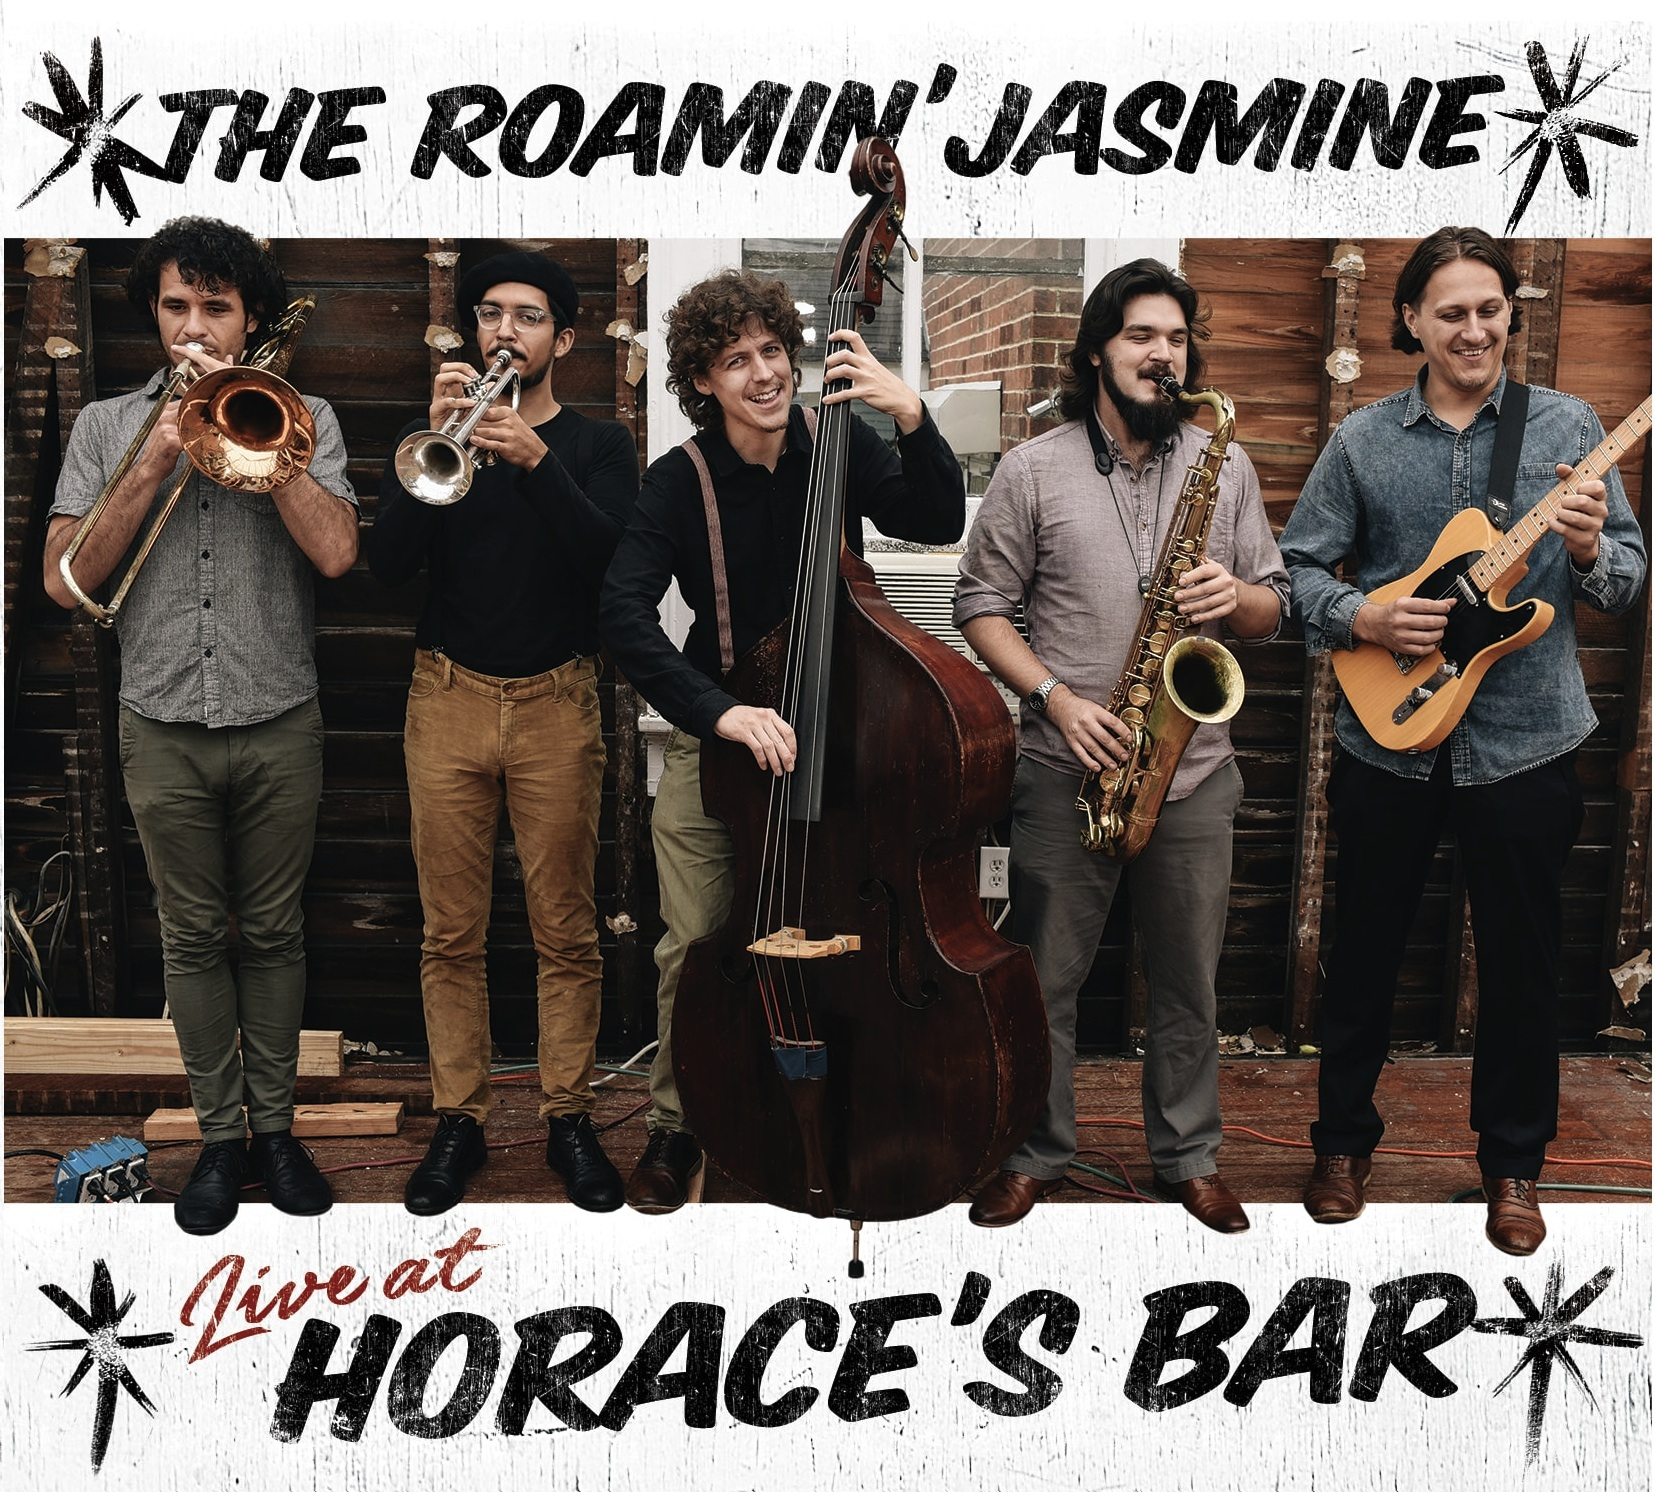 New Album: LIve At Horace's Bar - Milo Records New Orleans is proud to release Live At Horace's Bar, the third studio album by The Roamin' Jasmine, recorded live at a locals-only New Orleans corner bar in Central City, by Grammy-winning, Beusoleil alumus, Al Tharp of CarryOn Productions. Horace's is a frequent stop on uptown Second-Line routes and a stone's throw from the stomping grounds of the Mardi Gras Indians. On the night of the recording, this tiny bar was packed full of old friends and unsuspecting bar patrons-turned new fans from the neighborhood, who unexpectedly happened upon the live show. Between the 6-piece band, microphones, recording equipment, and packed seating, there was just enough room for dancers.